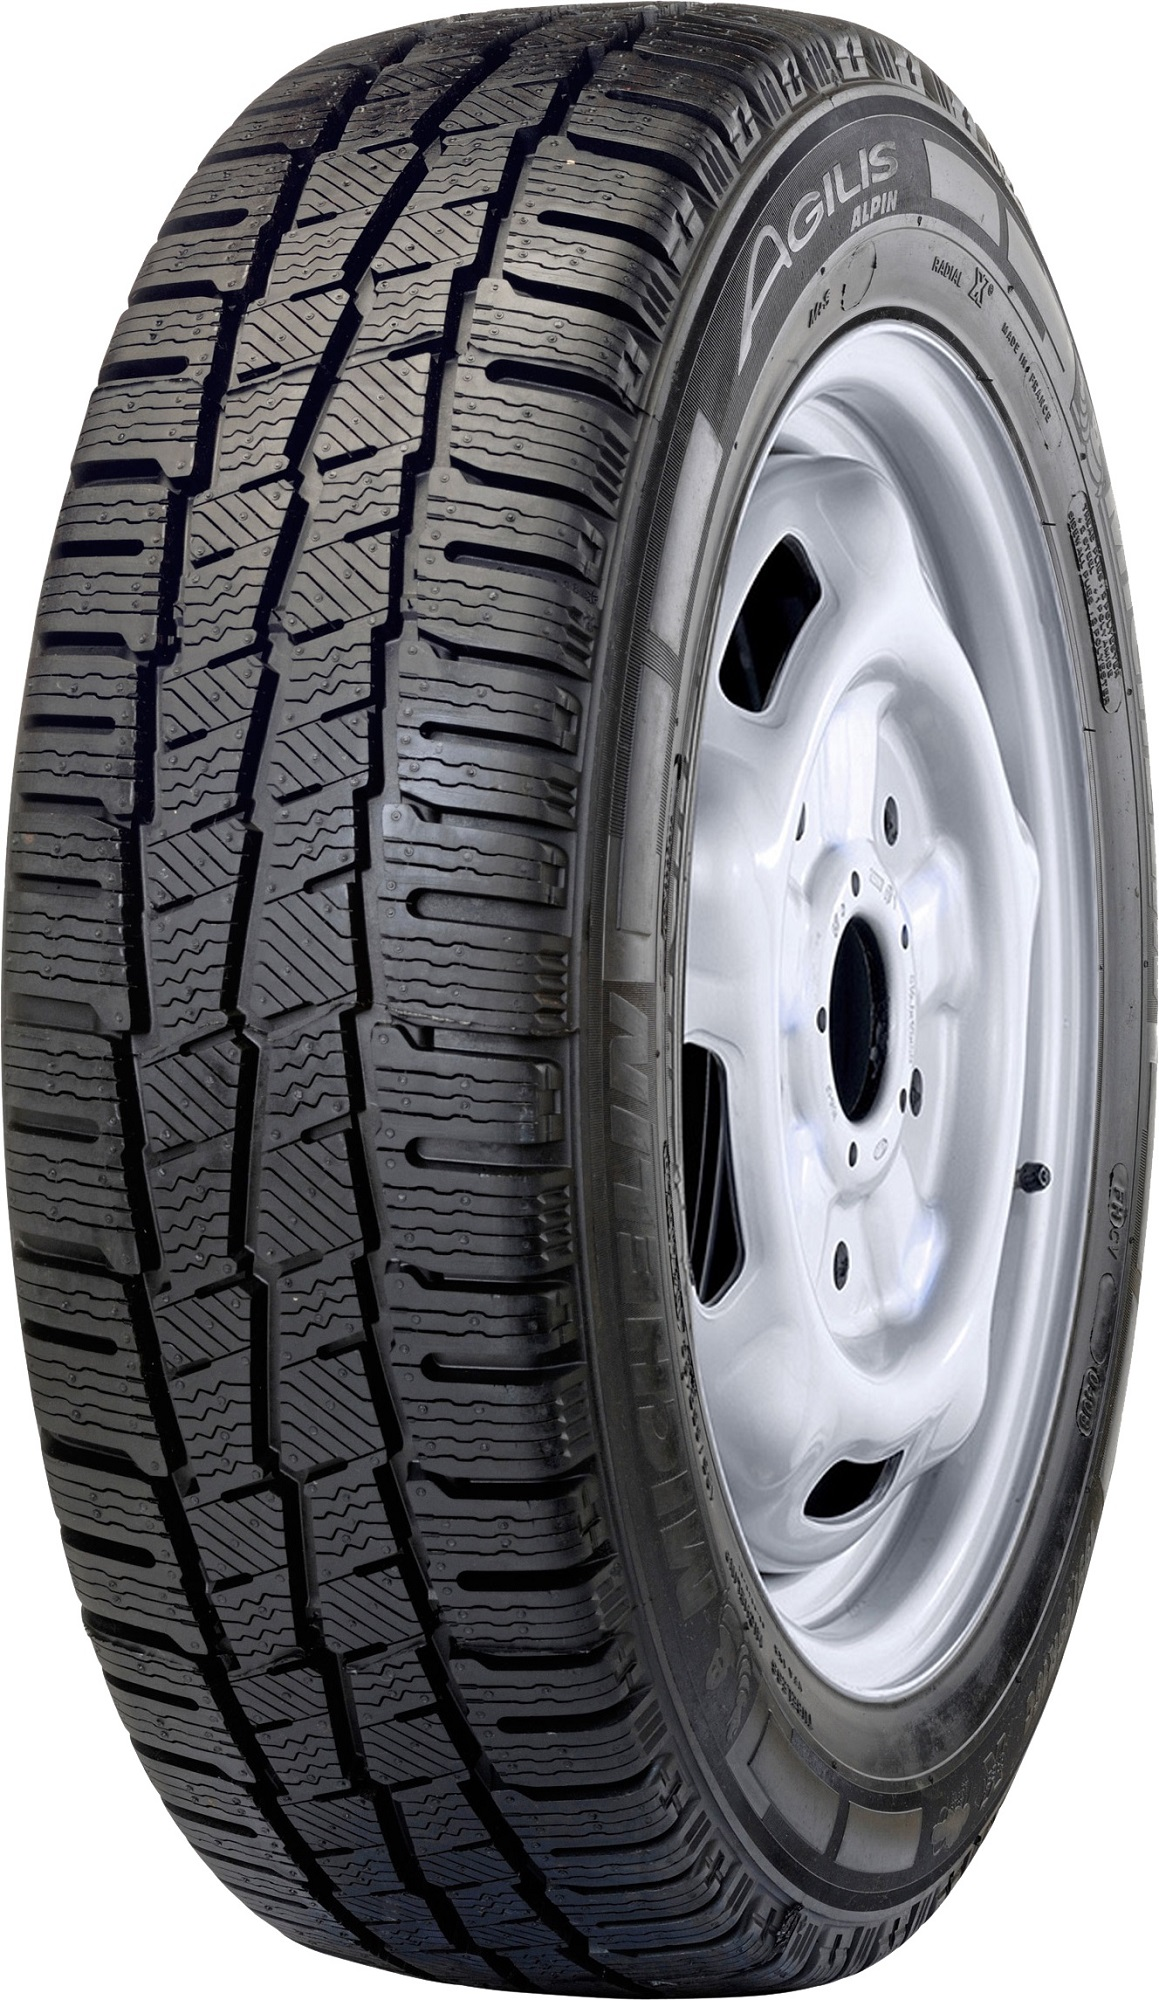 Anvelopa iarna MICHELIN AGILIS ALPIN 205/65 R16 107T